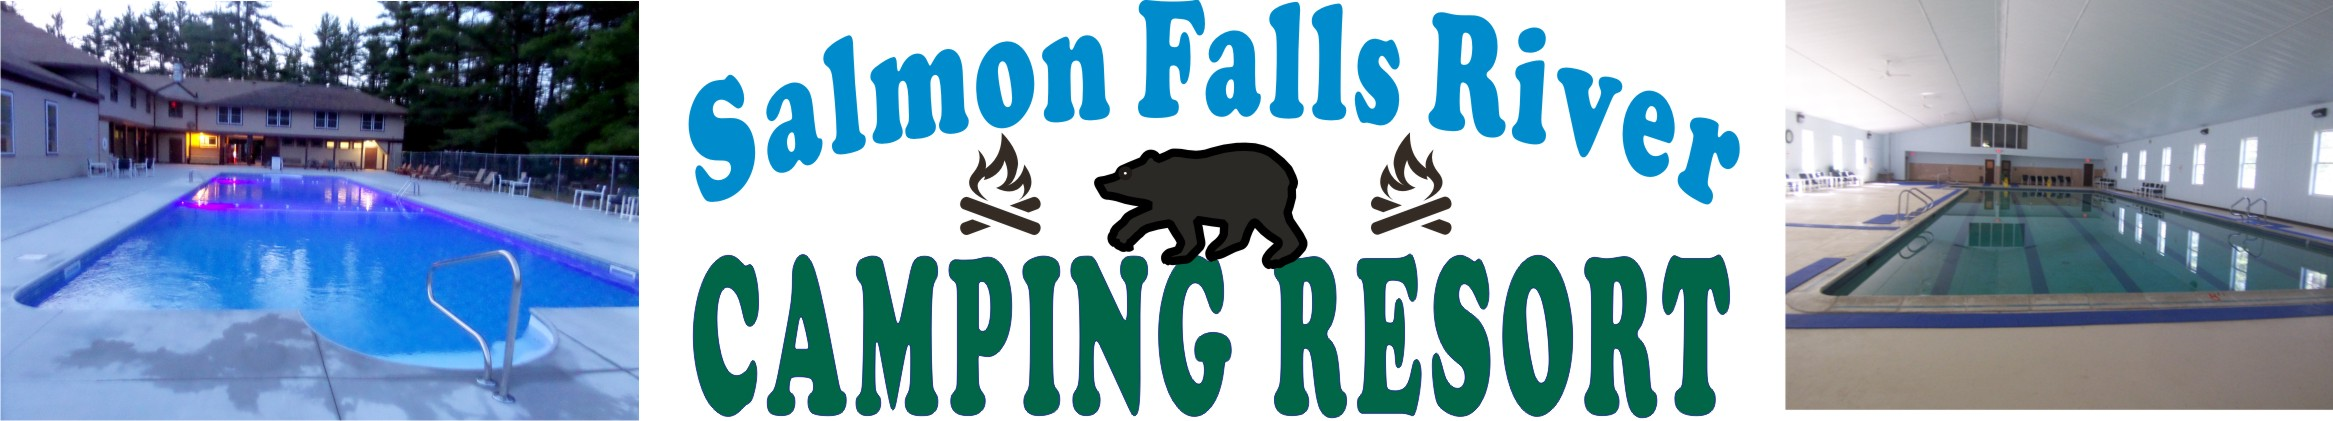 Salmon Falls River Camping Resort, Lebanon, ME.  Family and Pet Friendly RV and camping resort in southern Maine.